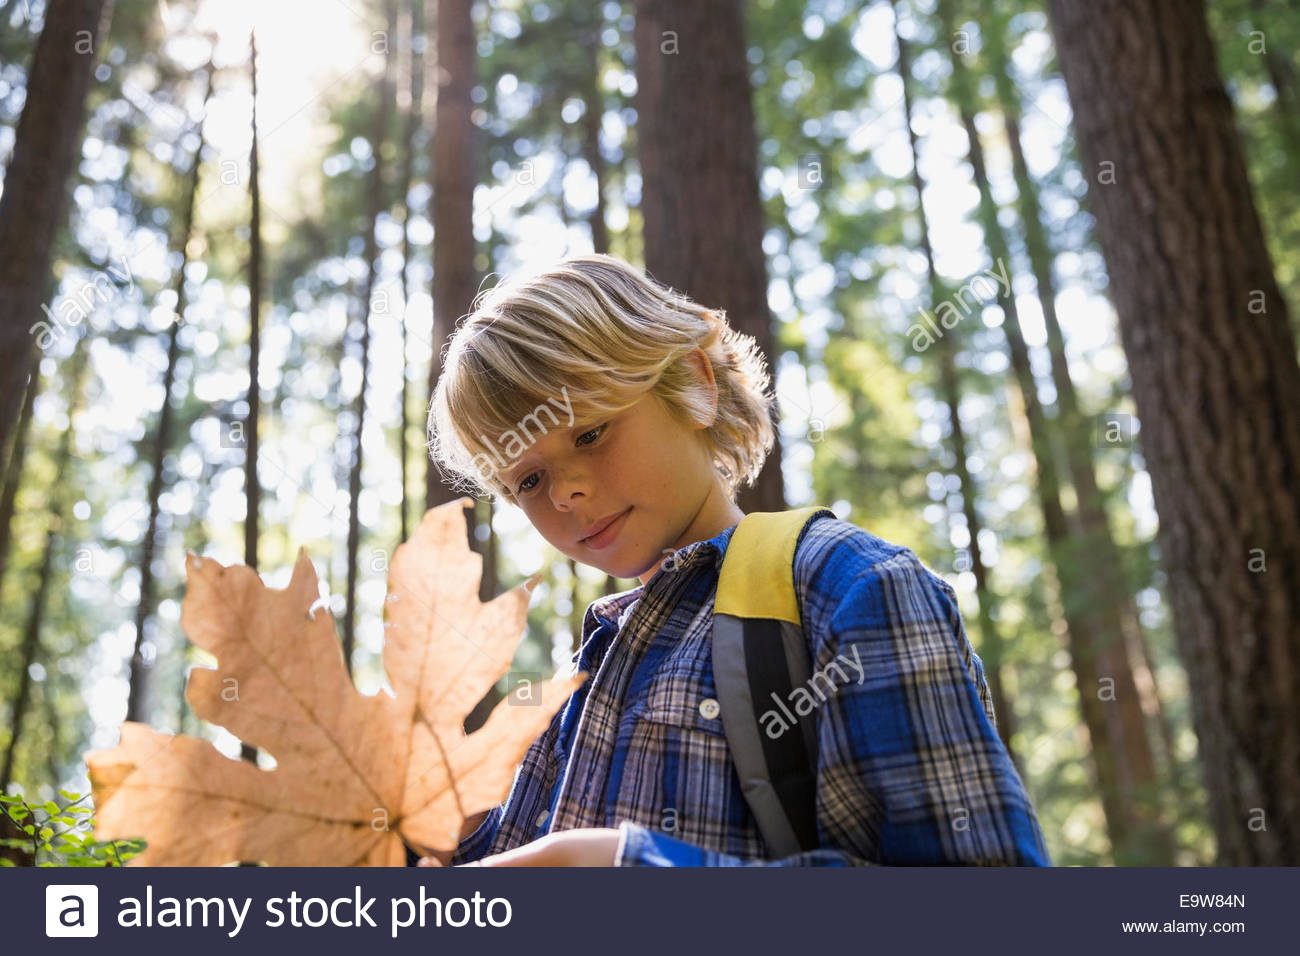 Curious boy examining leaf in woods - Stock Image